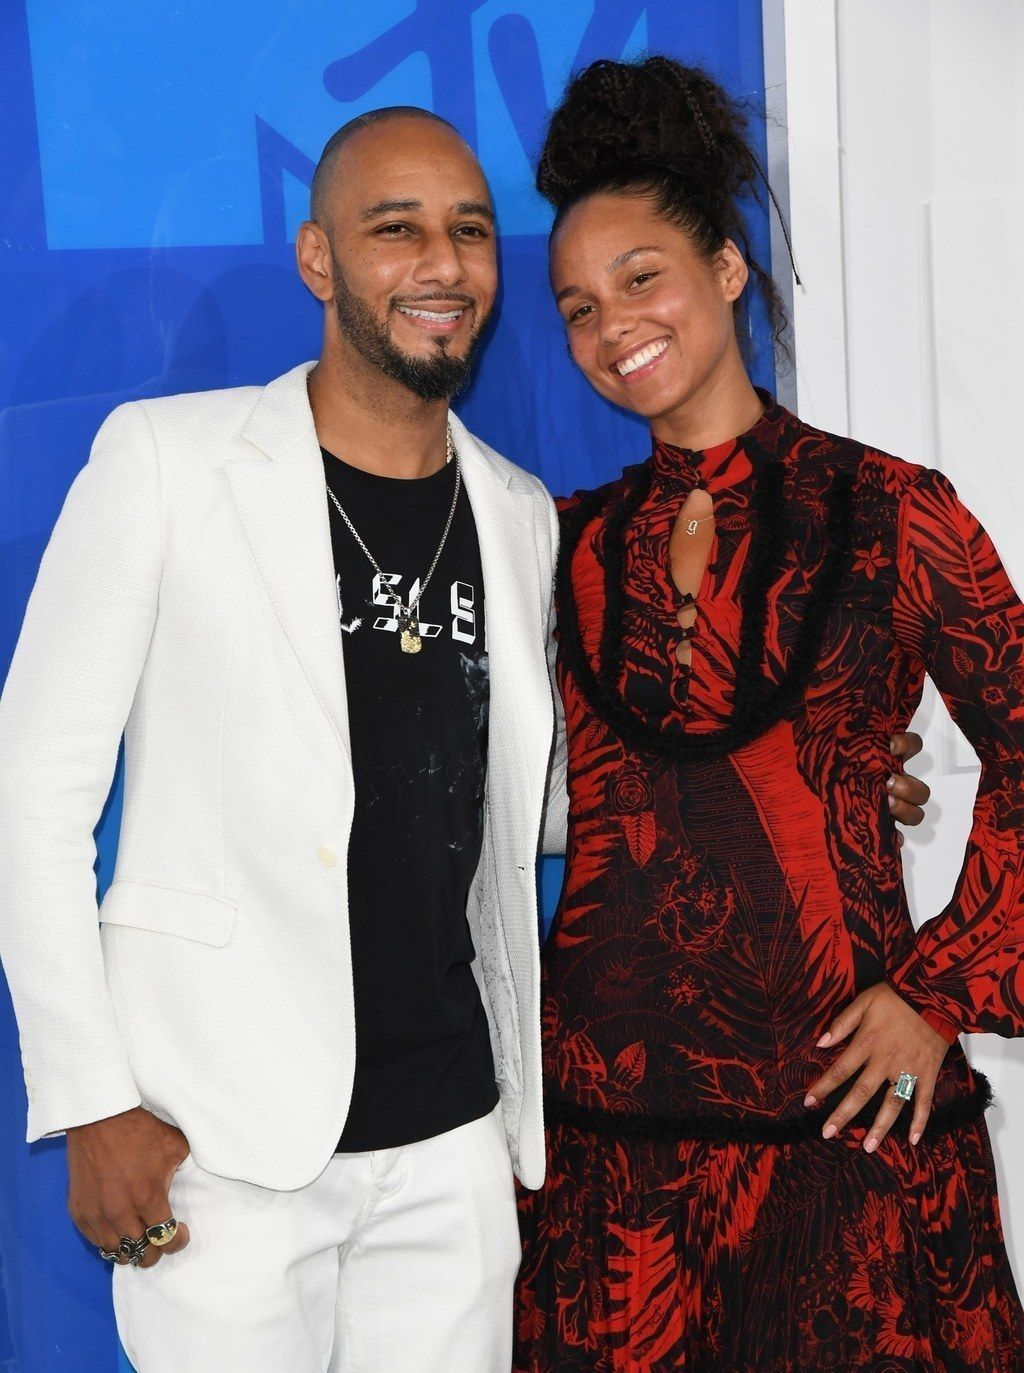 Singer Alicia Keys attended the VMAs on Sunday looking absolutely amazing, and without a trace of makeup on her face.